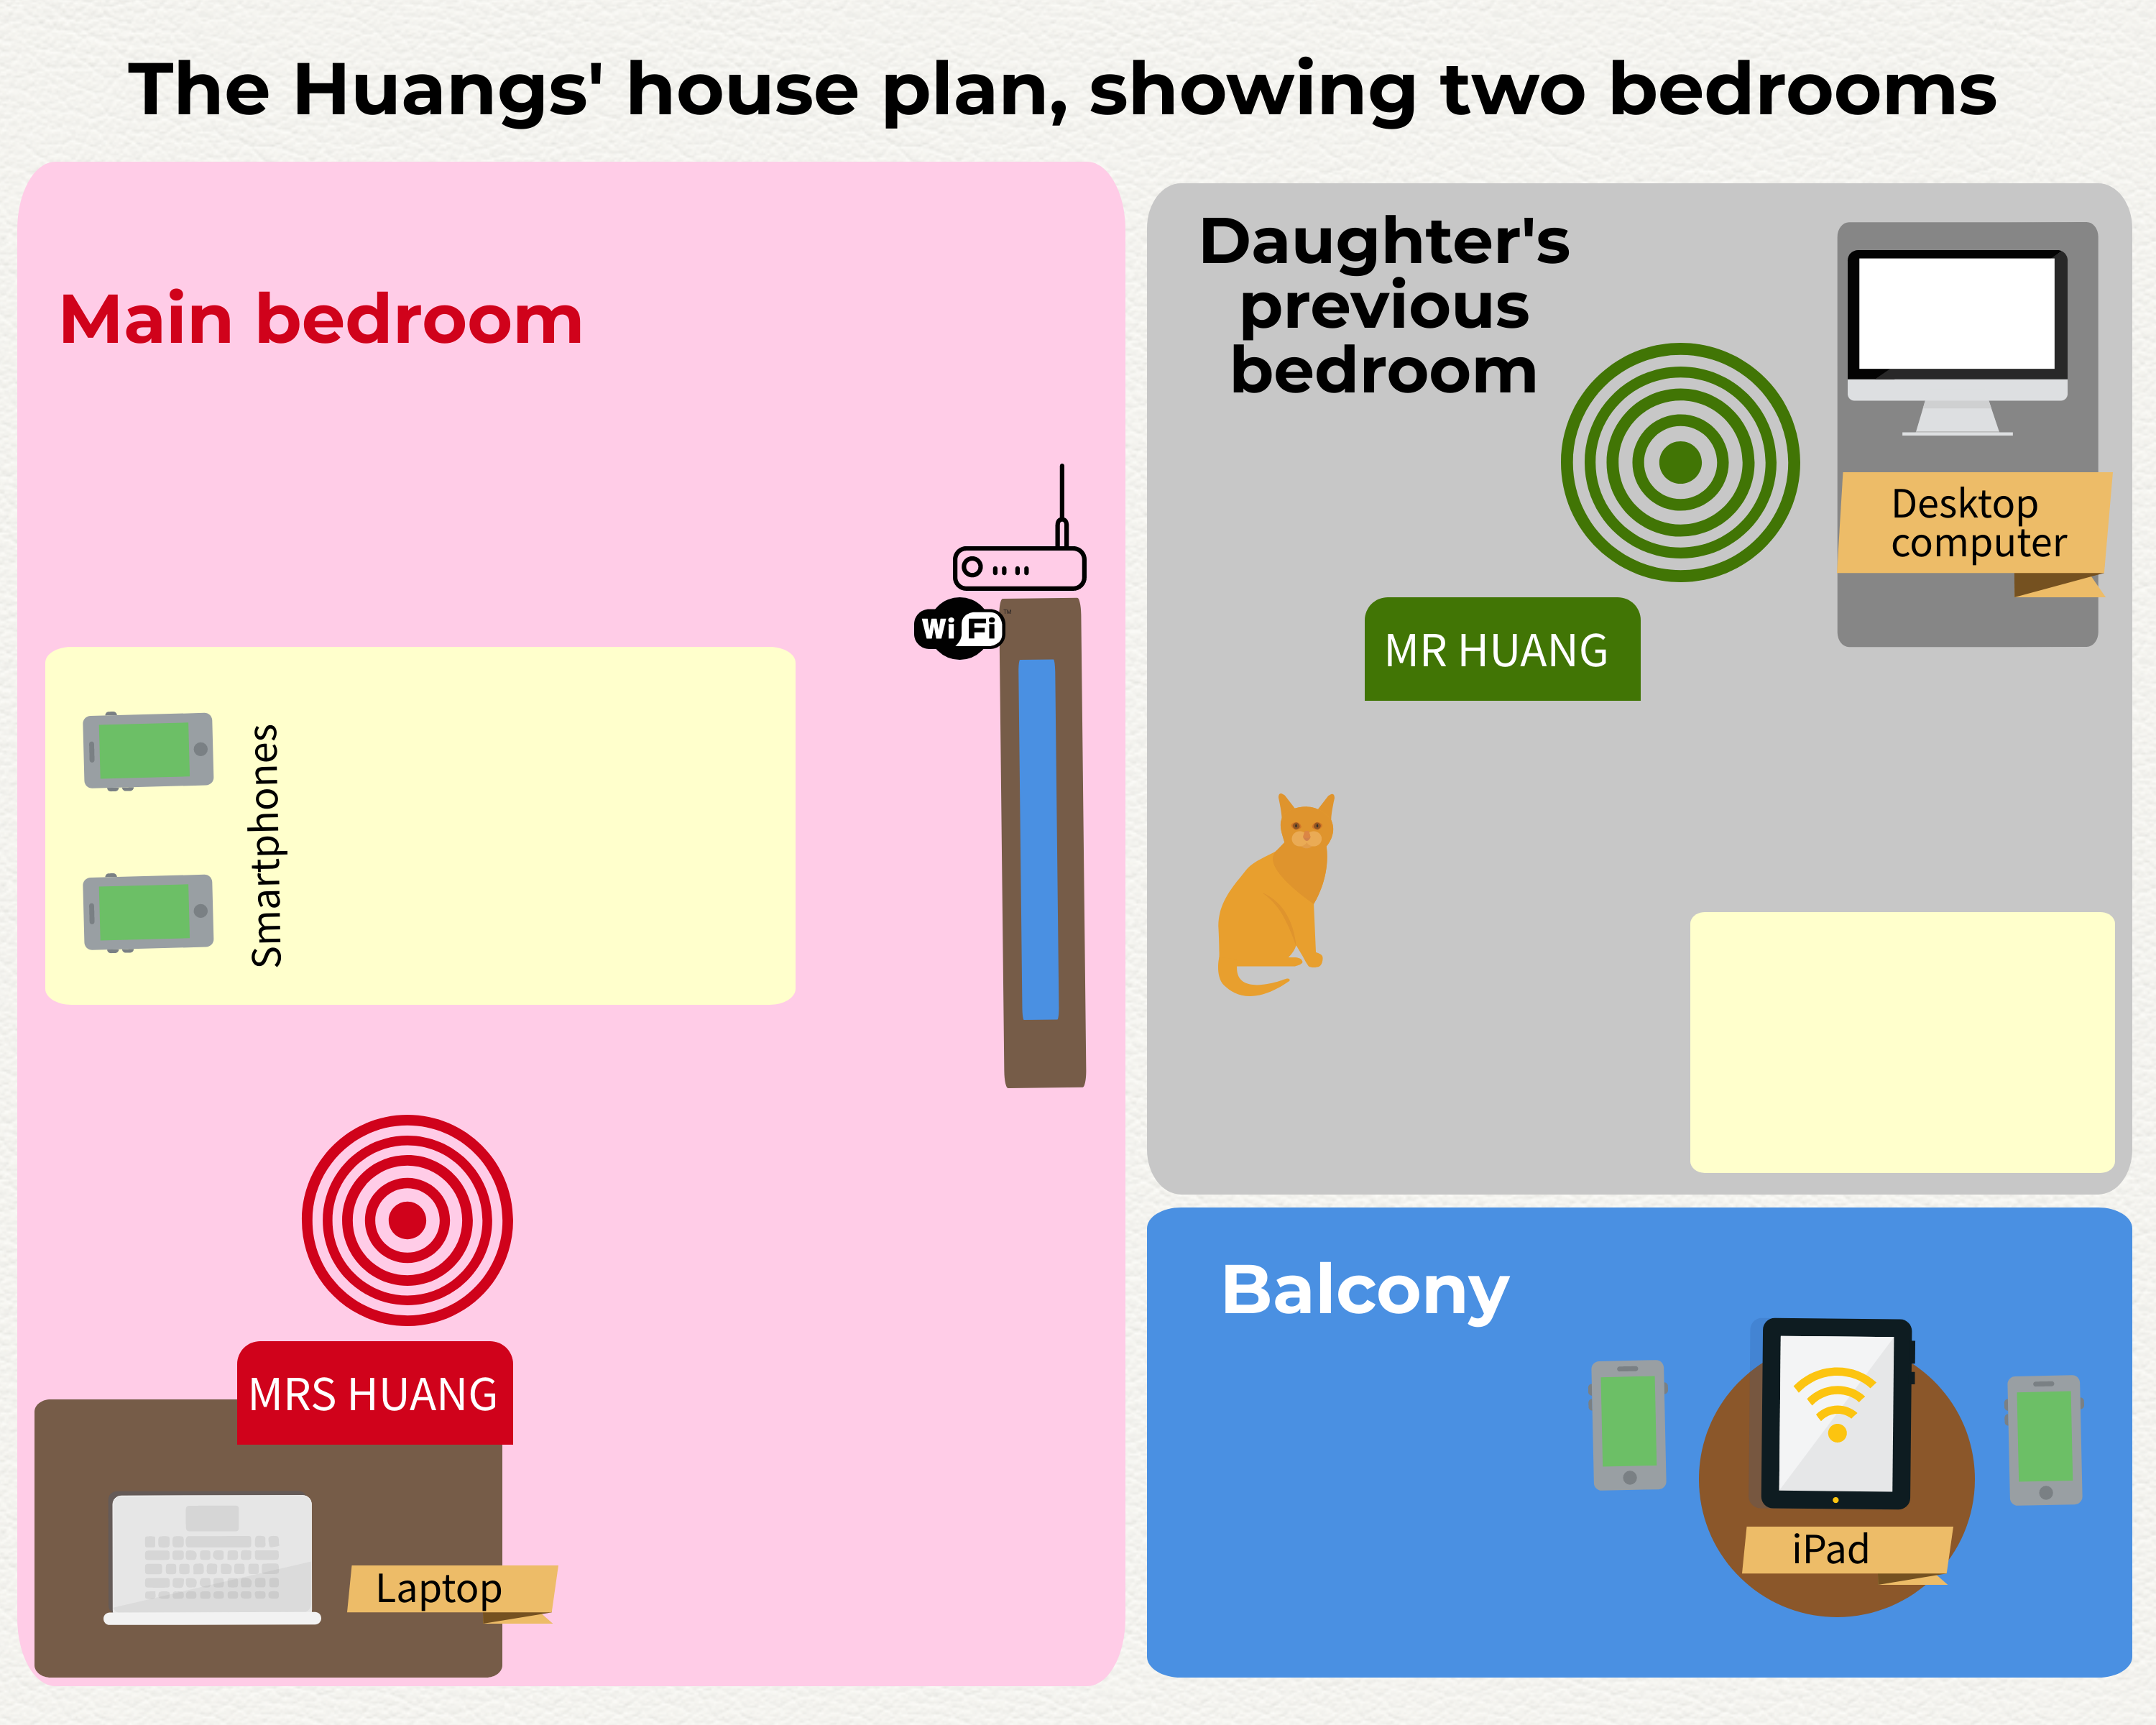 Second of two coloured blueprints of two research participants' household in Shanghai China, which shows different items in their two bedrooms, as seen from above. In the first bedroom on the left-hand side of the graphic, which is the main bedroom, we see two smartphones resting on a chest of drawers. Mr Huang's icon is shown as sitting at his laptop, at his desk. In this bedroom, there is also a TV and a wi-fi router. In the second bedroom, which is their daughter's previous bedroom, on the right-hand side of the graphic, Mrs Huang is shown as sitting at a desktop computer, there is also a cat and a bed in the room. The balcony is shown in a square on the bottom right-hand side of the graphic, and there, there is an iPad sitting on a table alongside two smartphones.